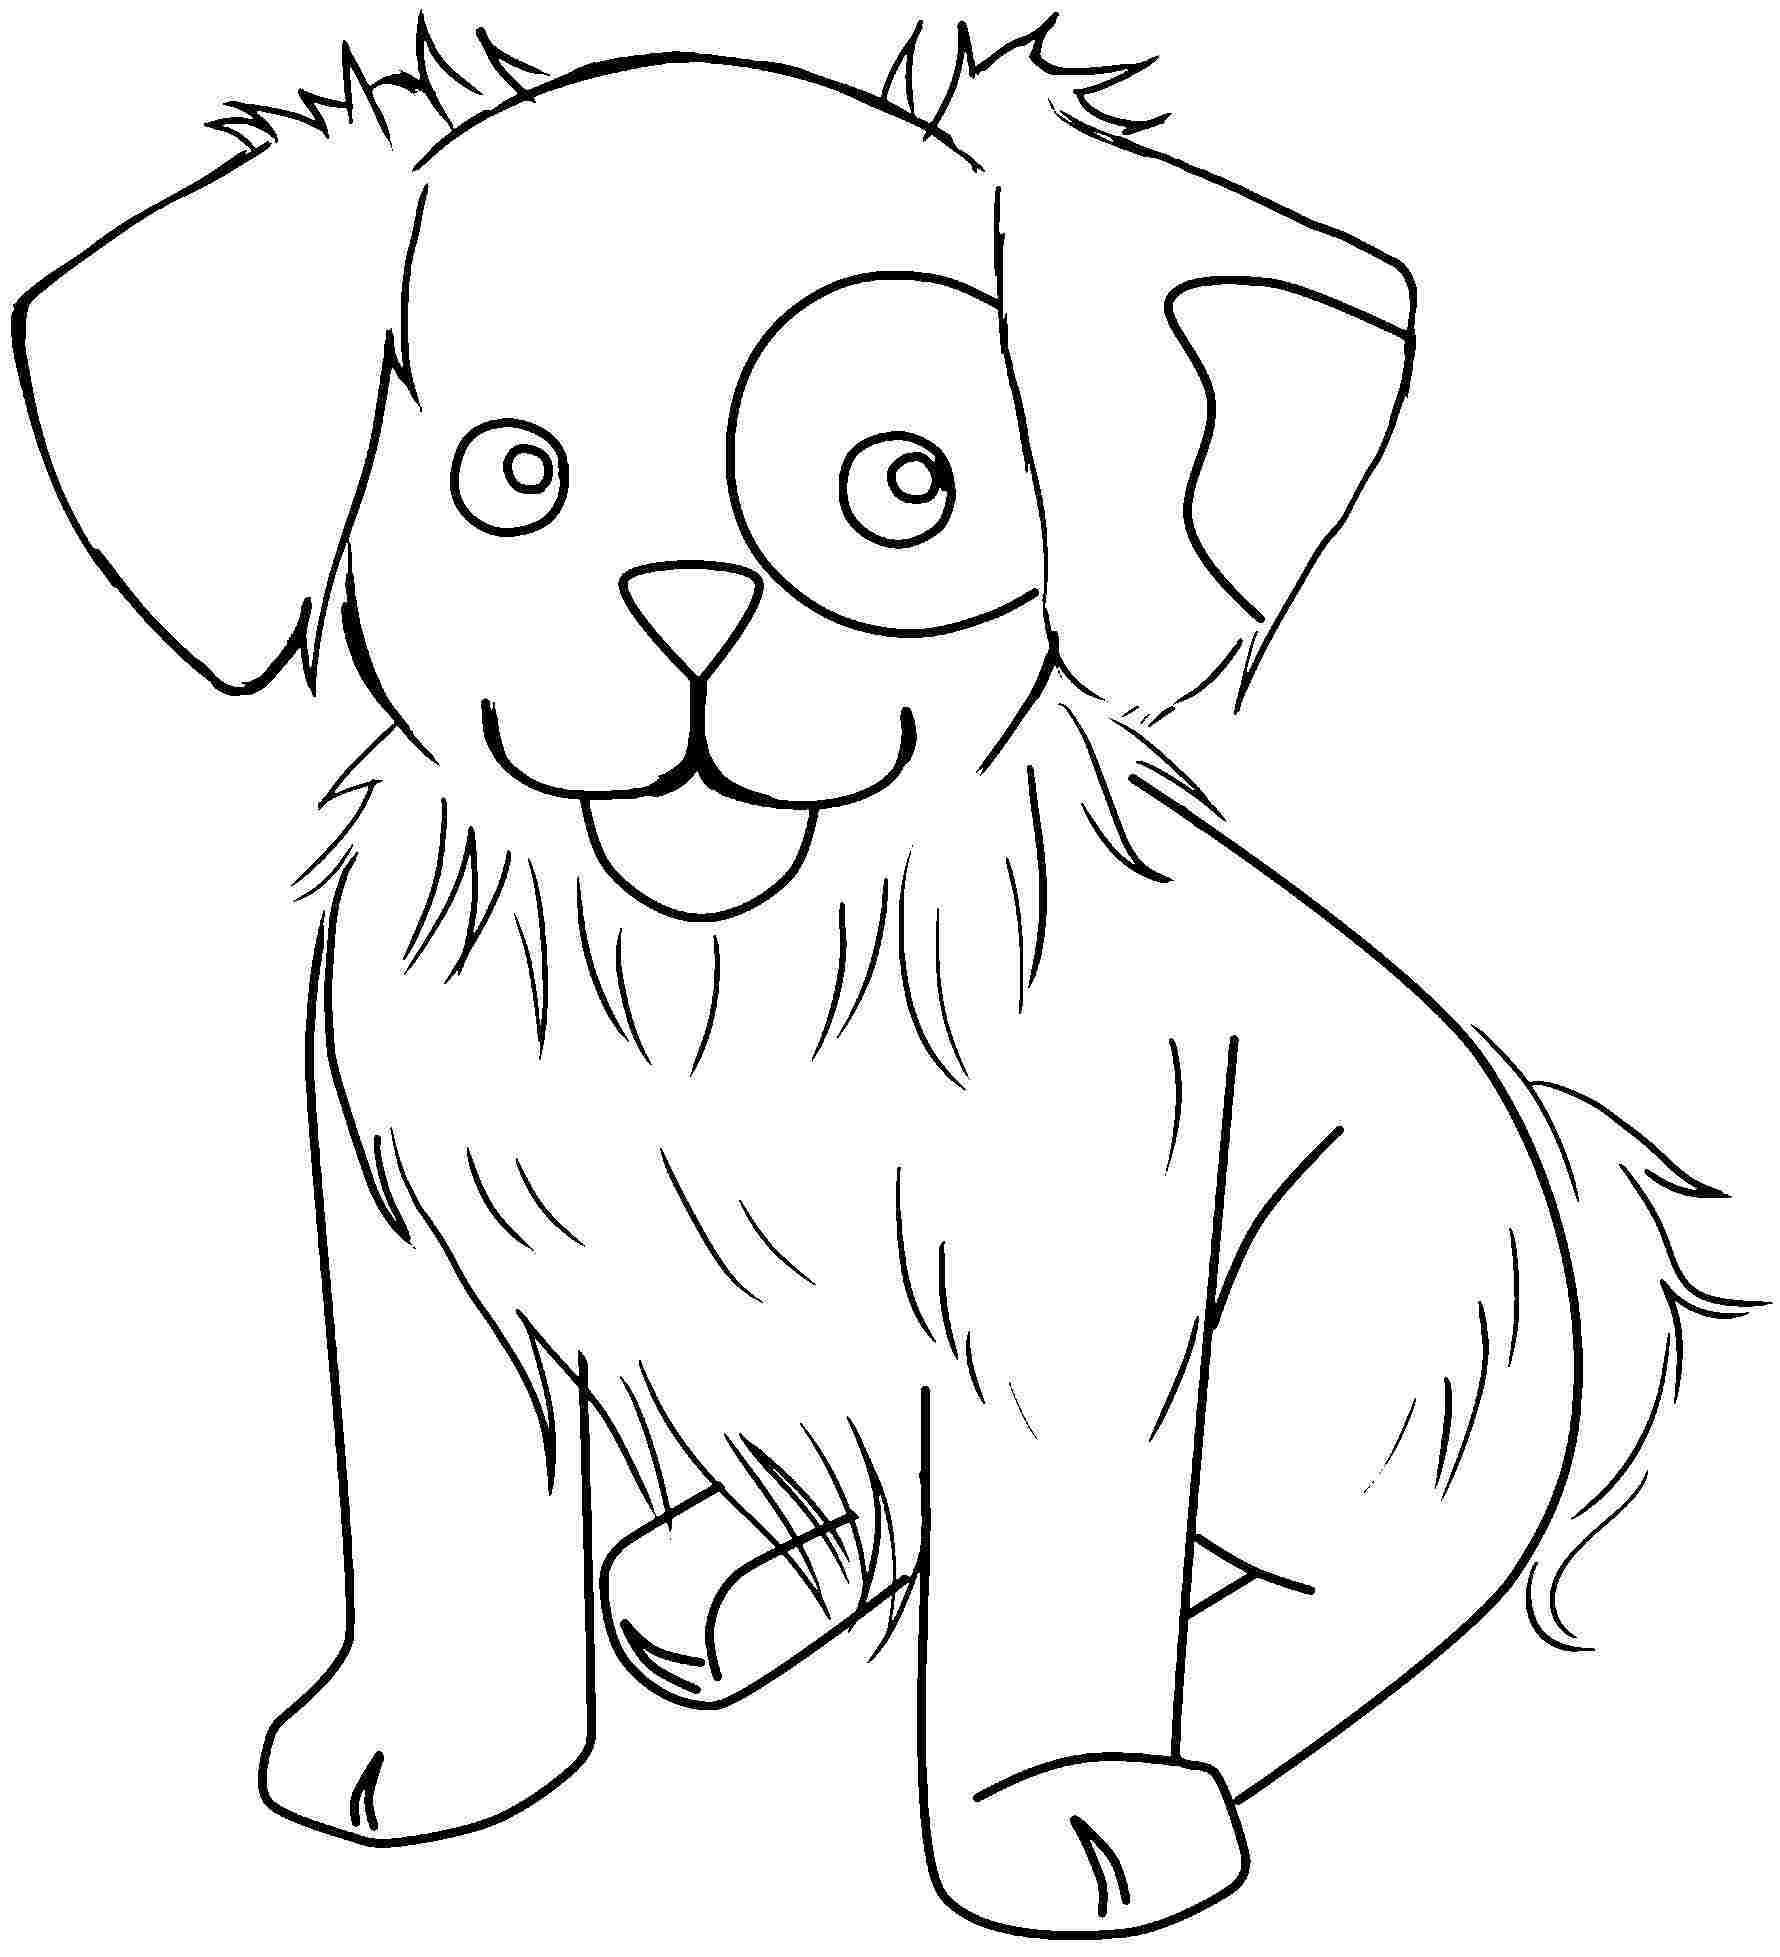 Print Animals Coloring Pages 2 By Julie Zoo Animal Coloring Pages Zoo Coloring Pages Coloring Pictures Of Animals